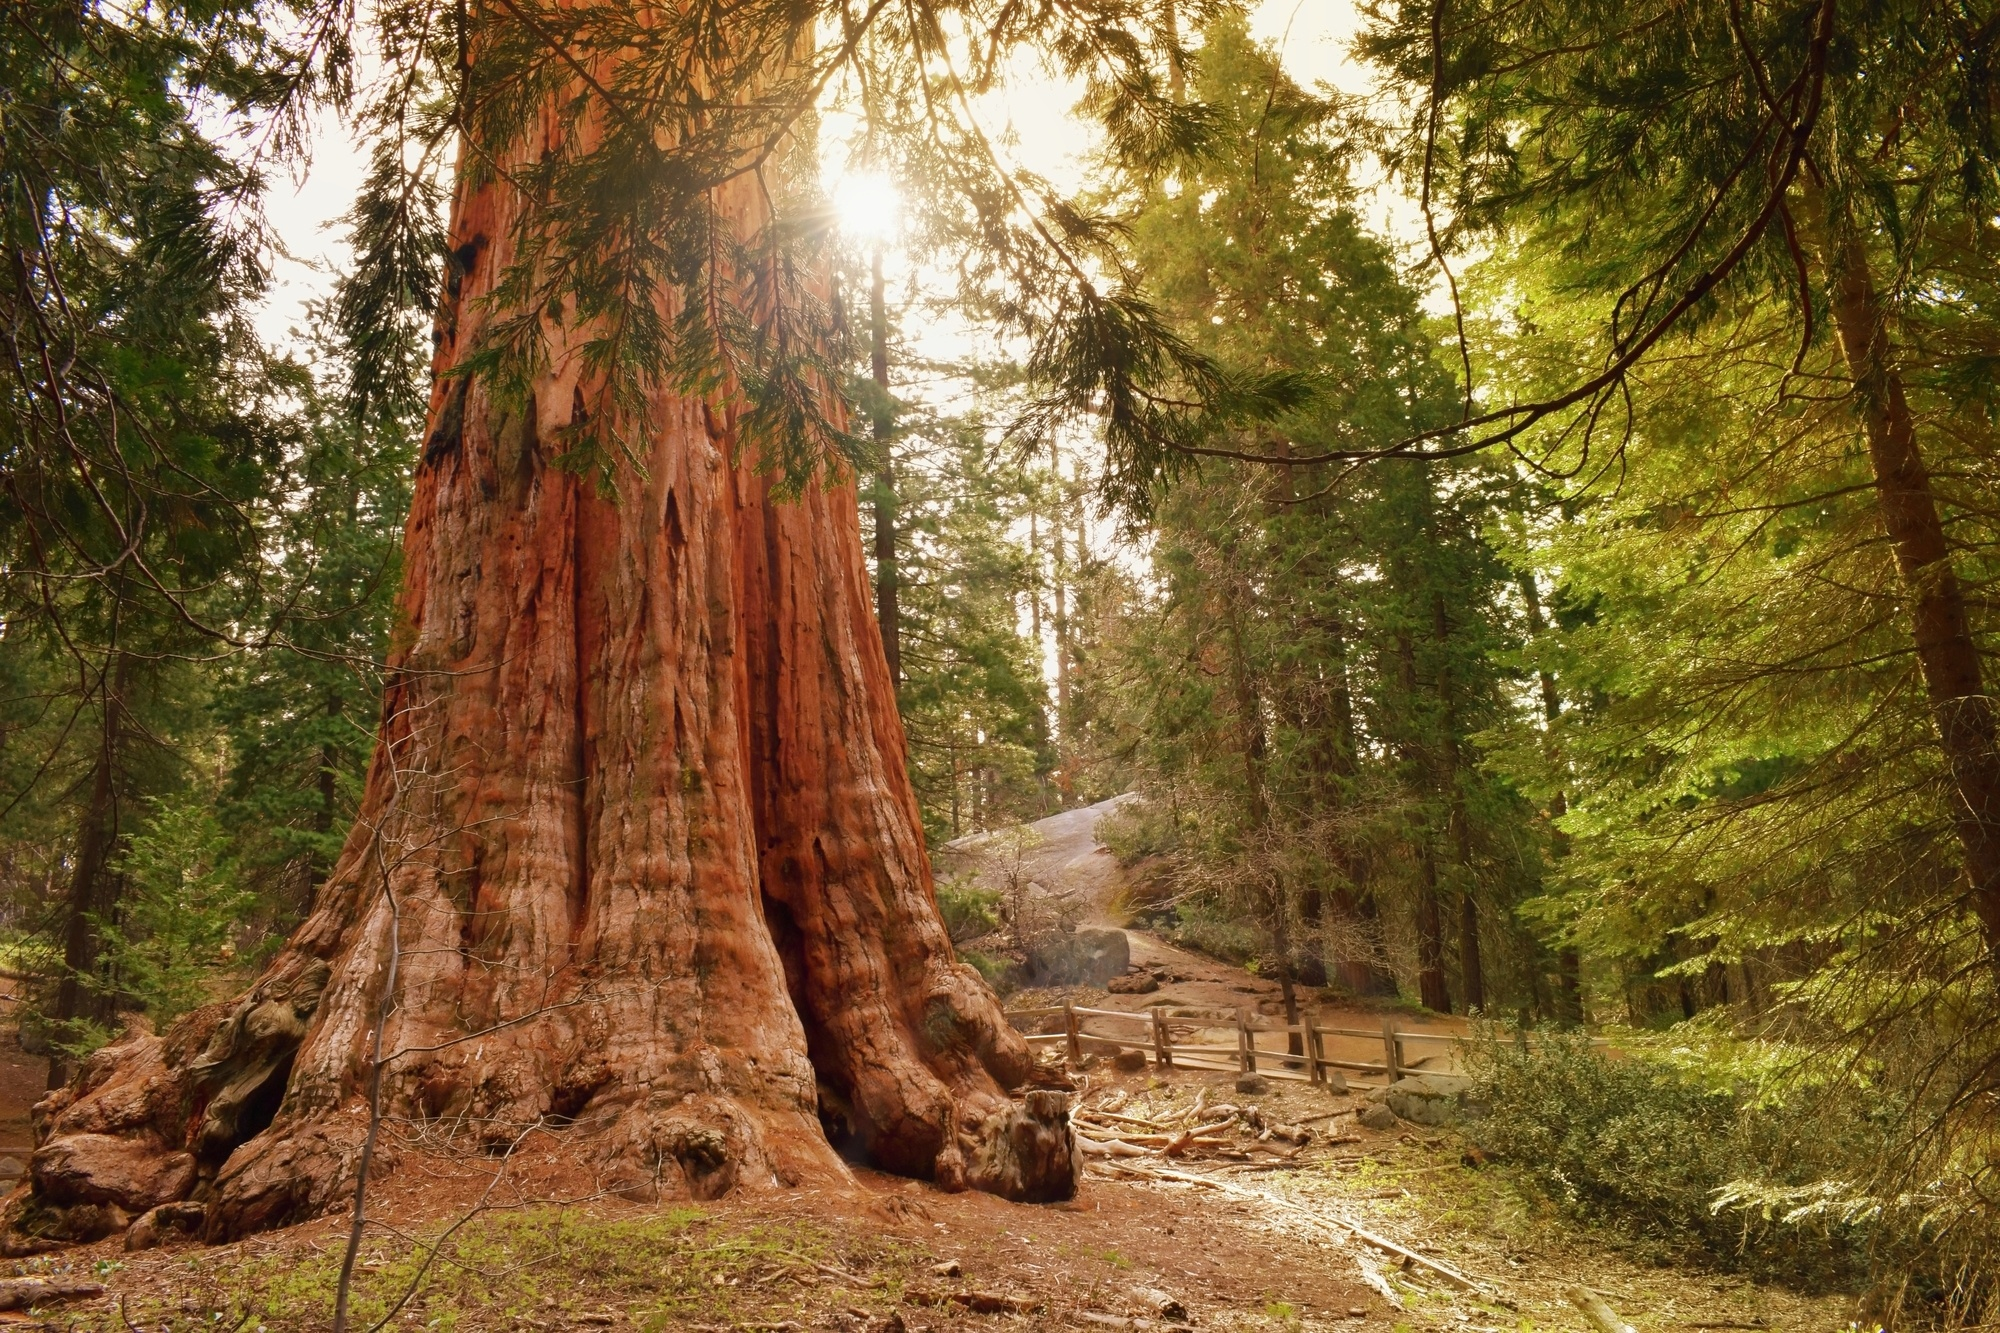 The General Grant Tree, the second largest tree in the world, in Kings Canyon National Park